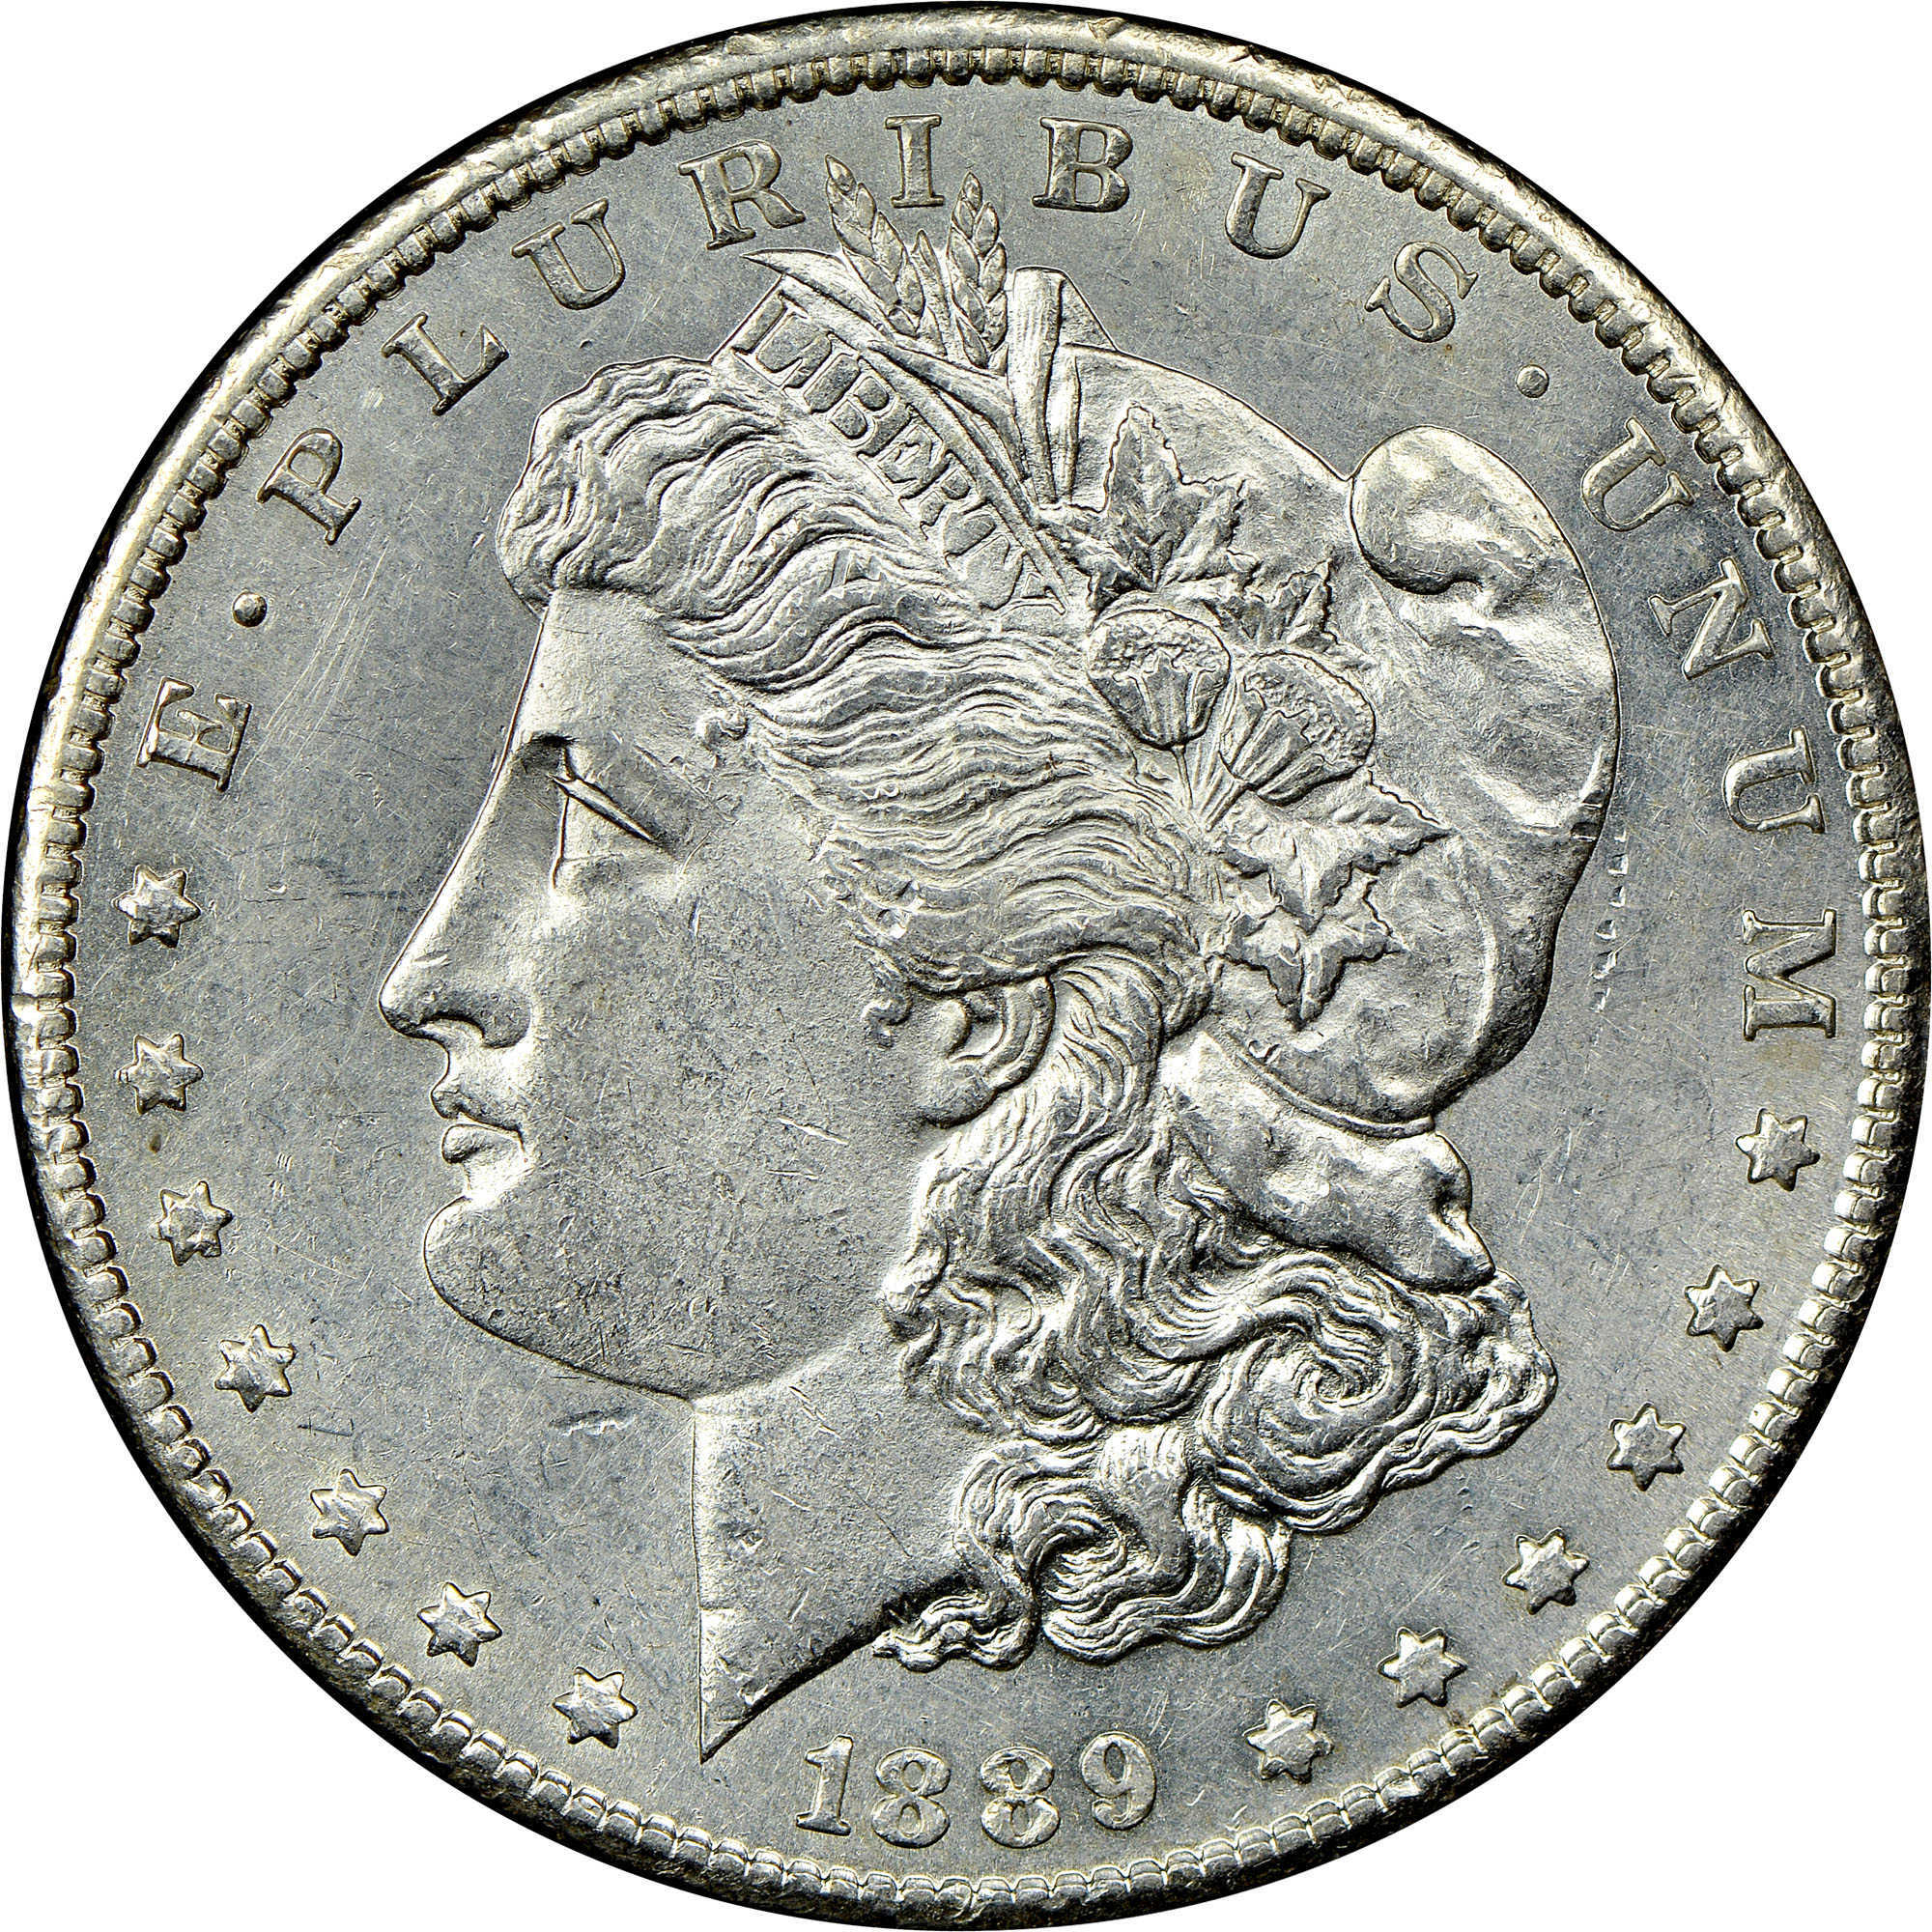 Cc 1 Ms Morgan Dollars